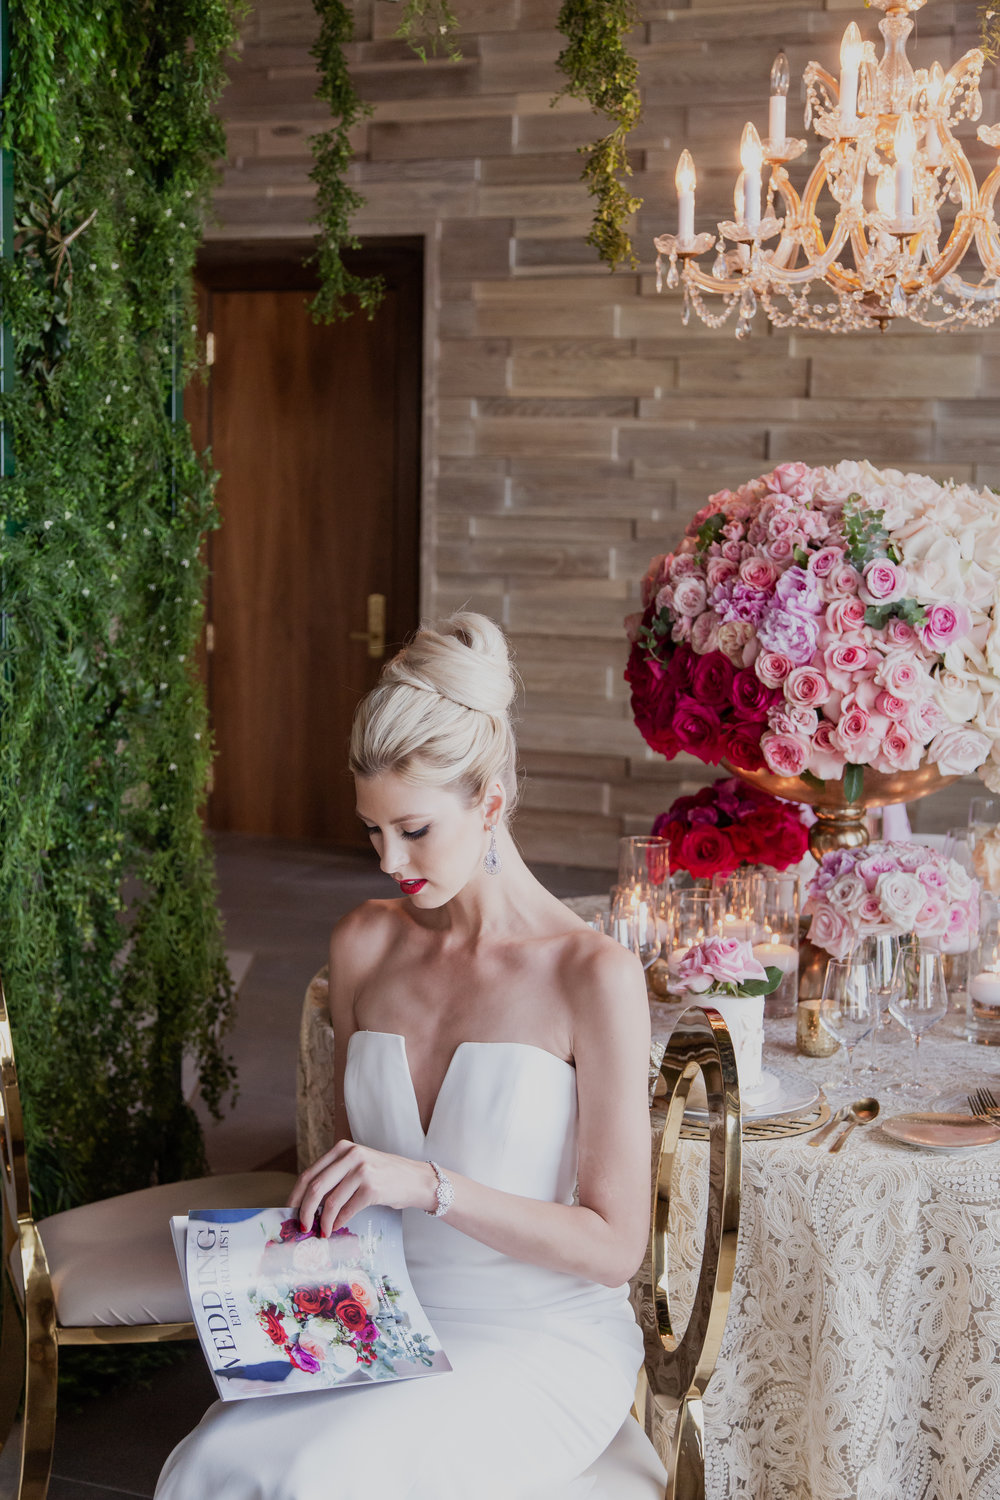 Bride reading her custom wedding magazine.Personalized wedding magazines! Made to order for couples in love. Photo by Adam Frazier.